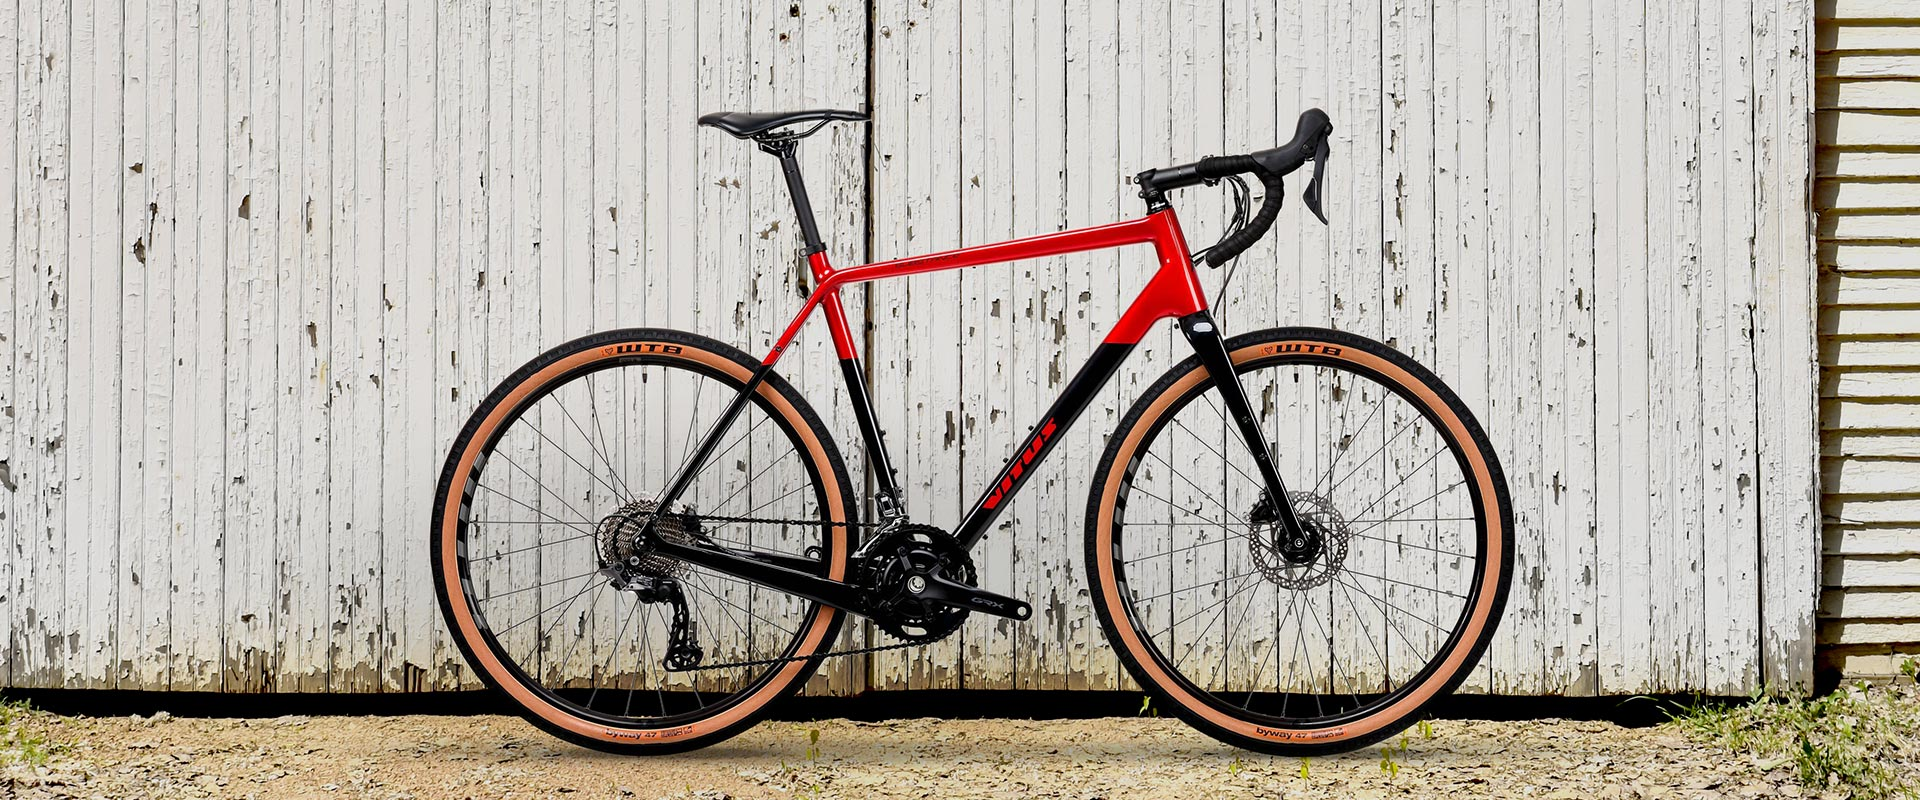 Substance CRS 2 Adventure Road Bike